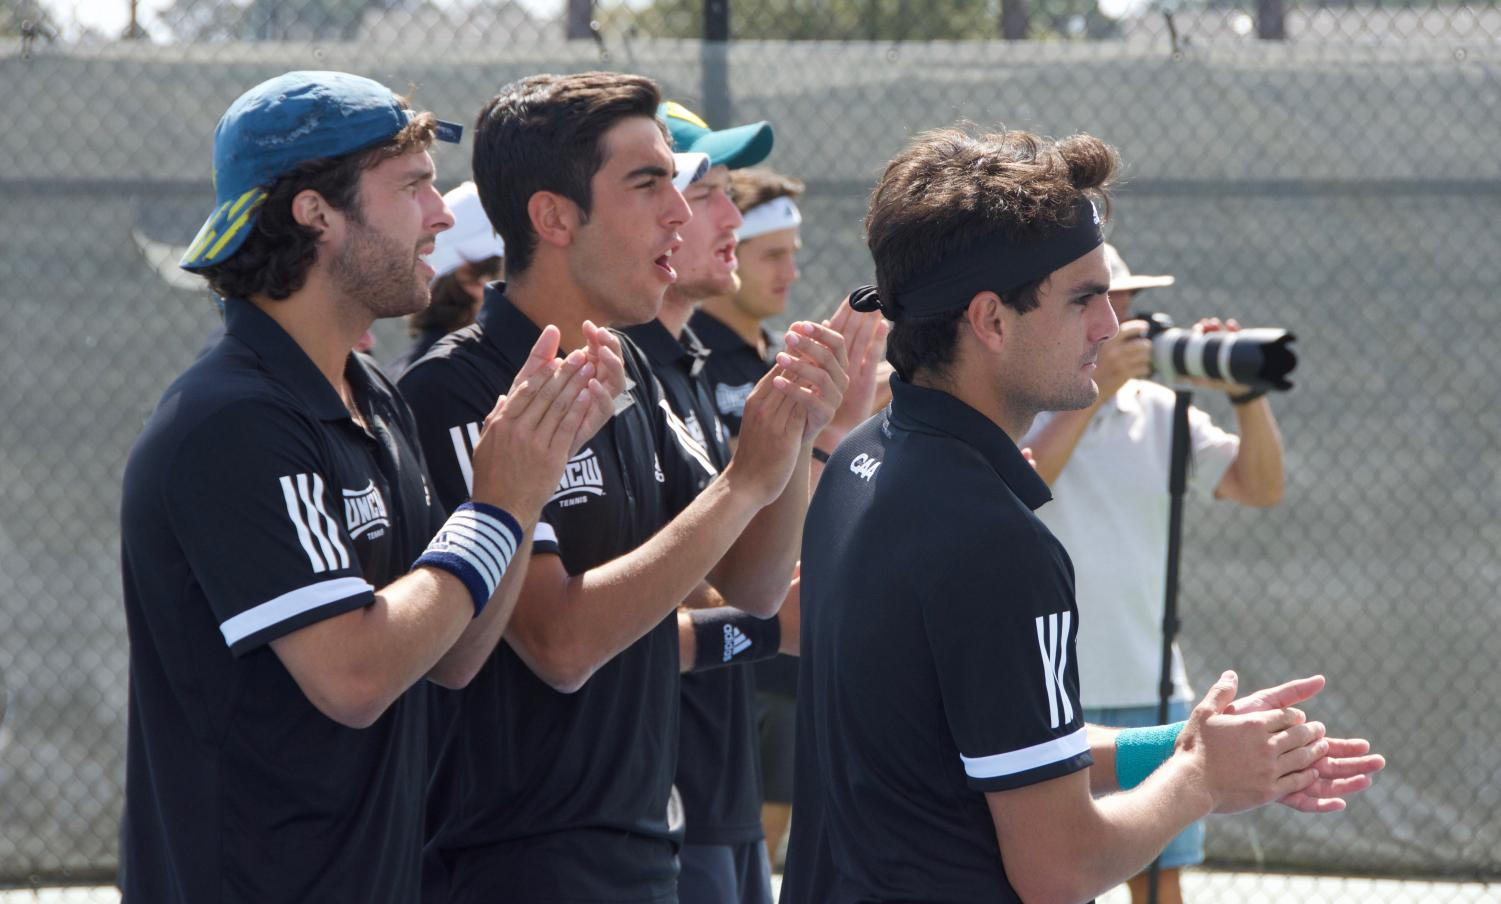 The+Seahawks+cheer+on+their+teammates+during+UNCW%27s+final+doubles+match.+